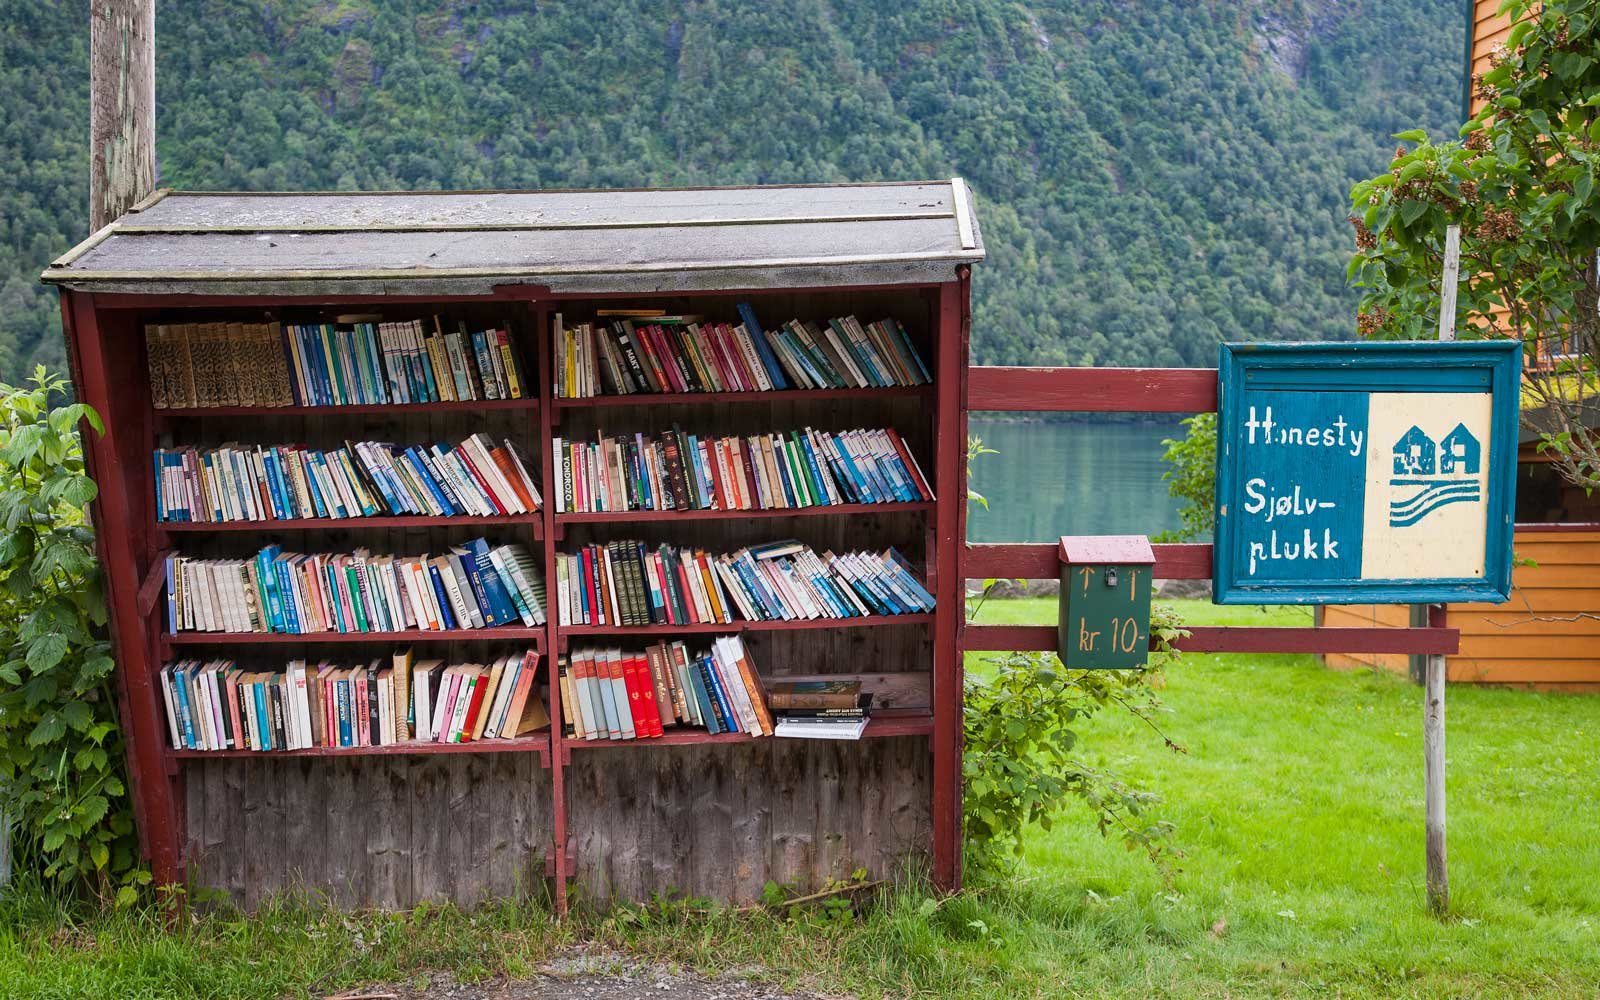 Books at a bus stop in Norway